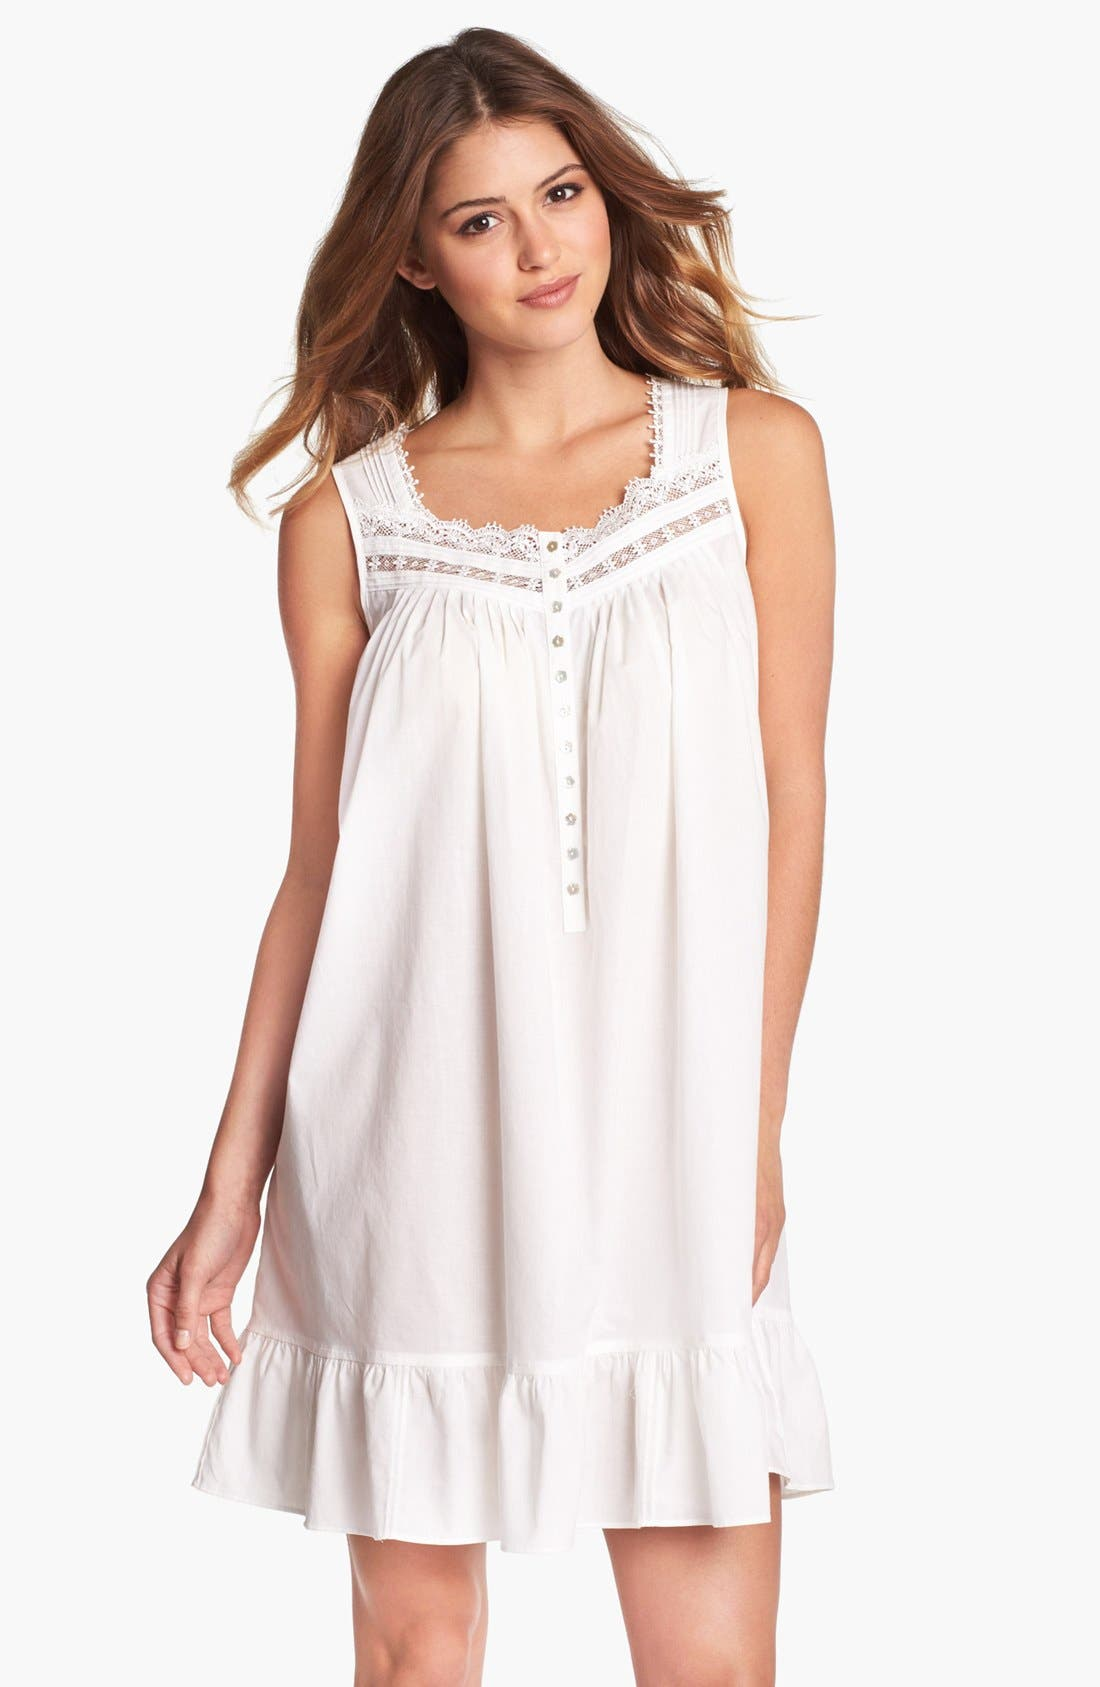 Alternate Image 1 Selected - Eileen West 'Victorian Romance' Short Nightgown (Online Exclusive)